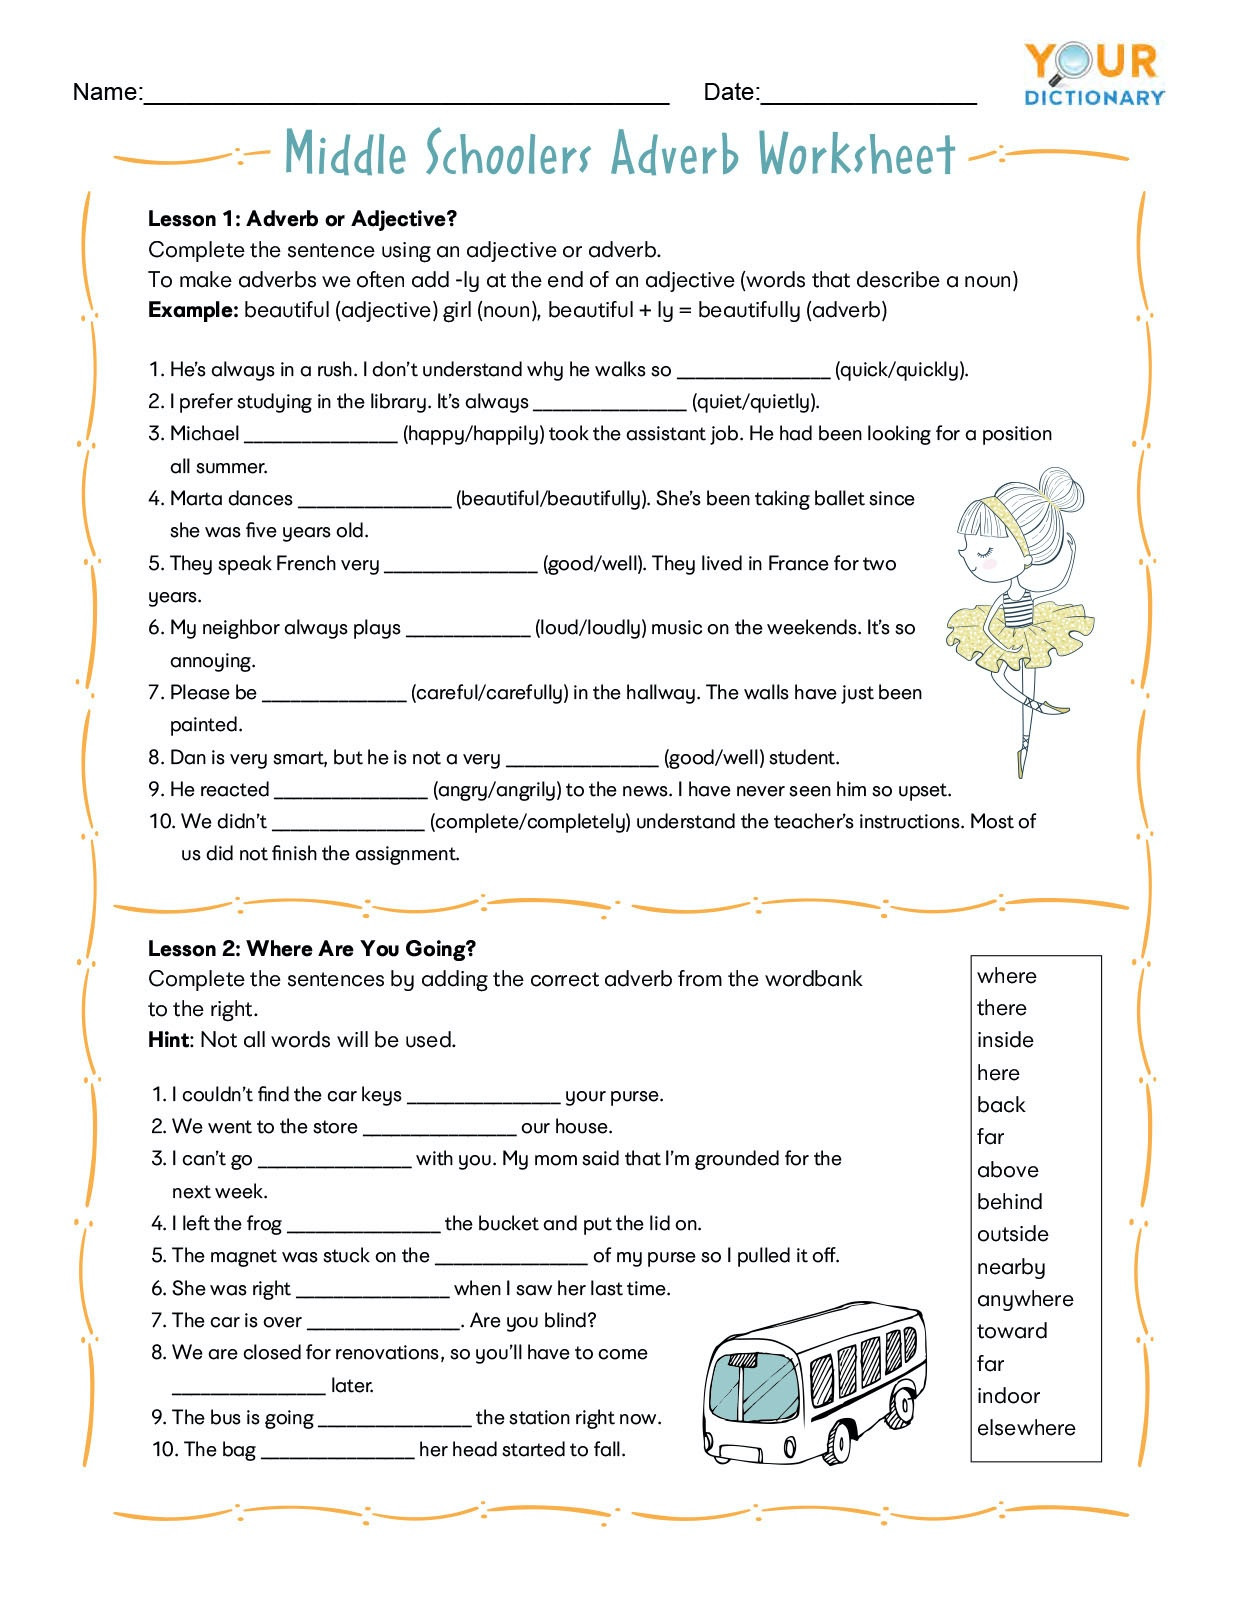 Dictionary Skills Worksheets Middle School Adverb Worksheets for Elementary and Middle School